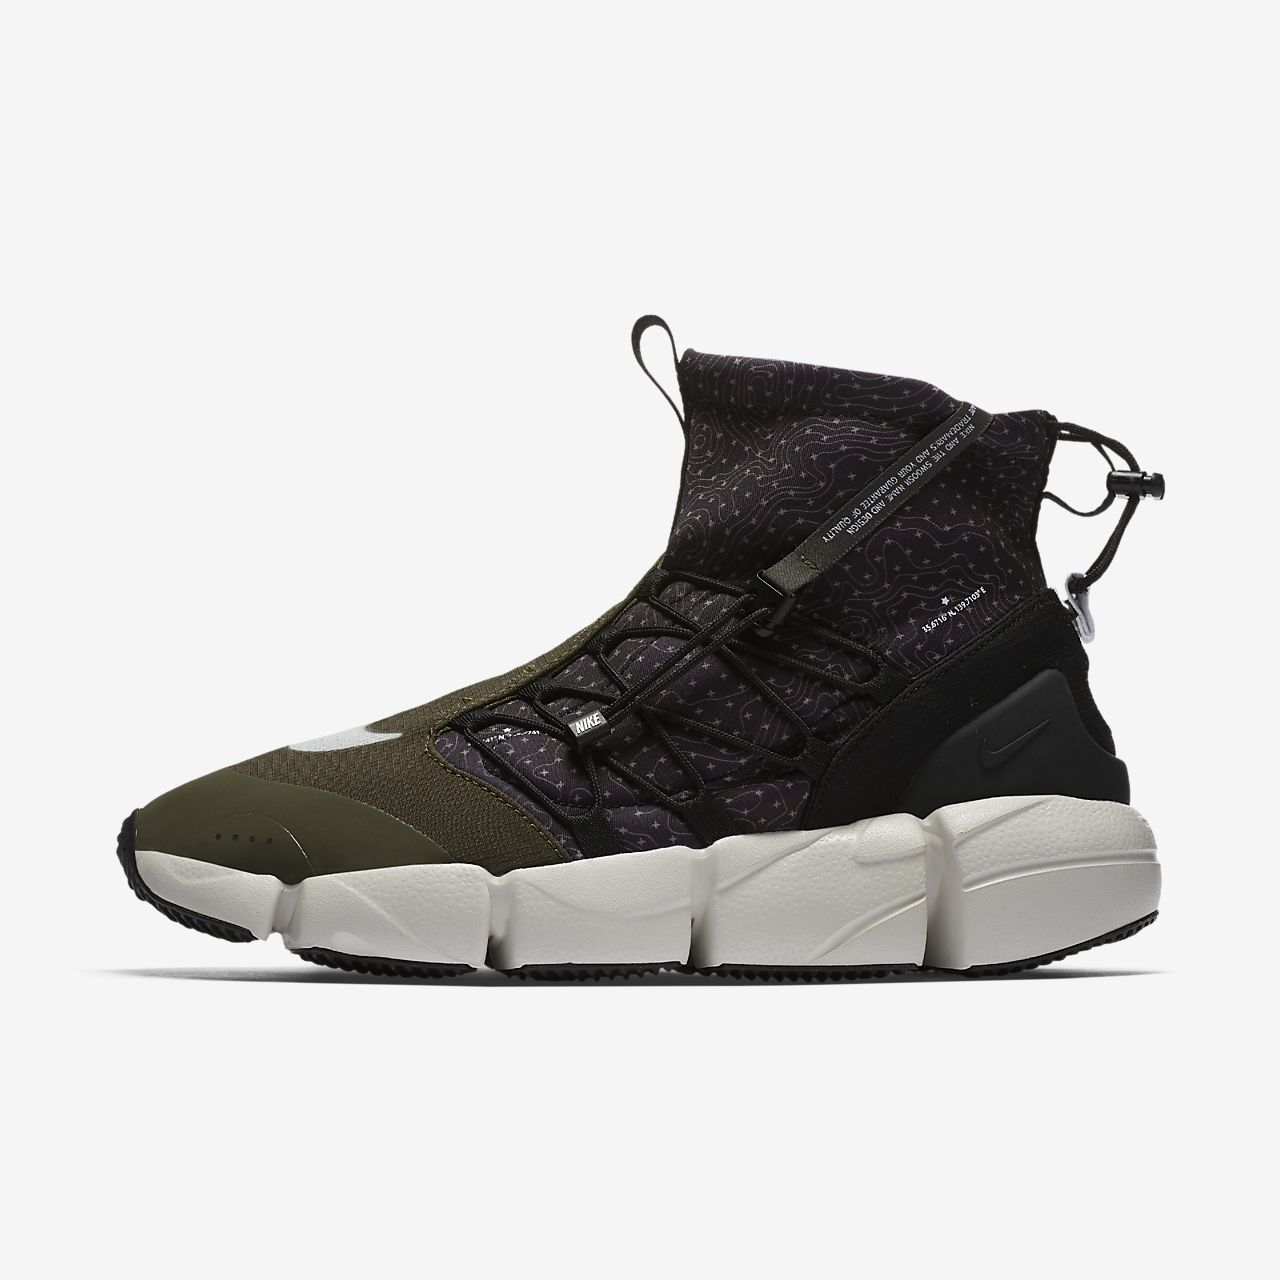 los angeles b089a a6127 Nike Air Footscape Mid Utility Zapatillas - Hombre